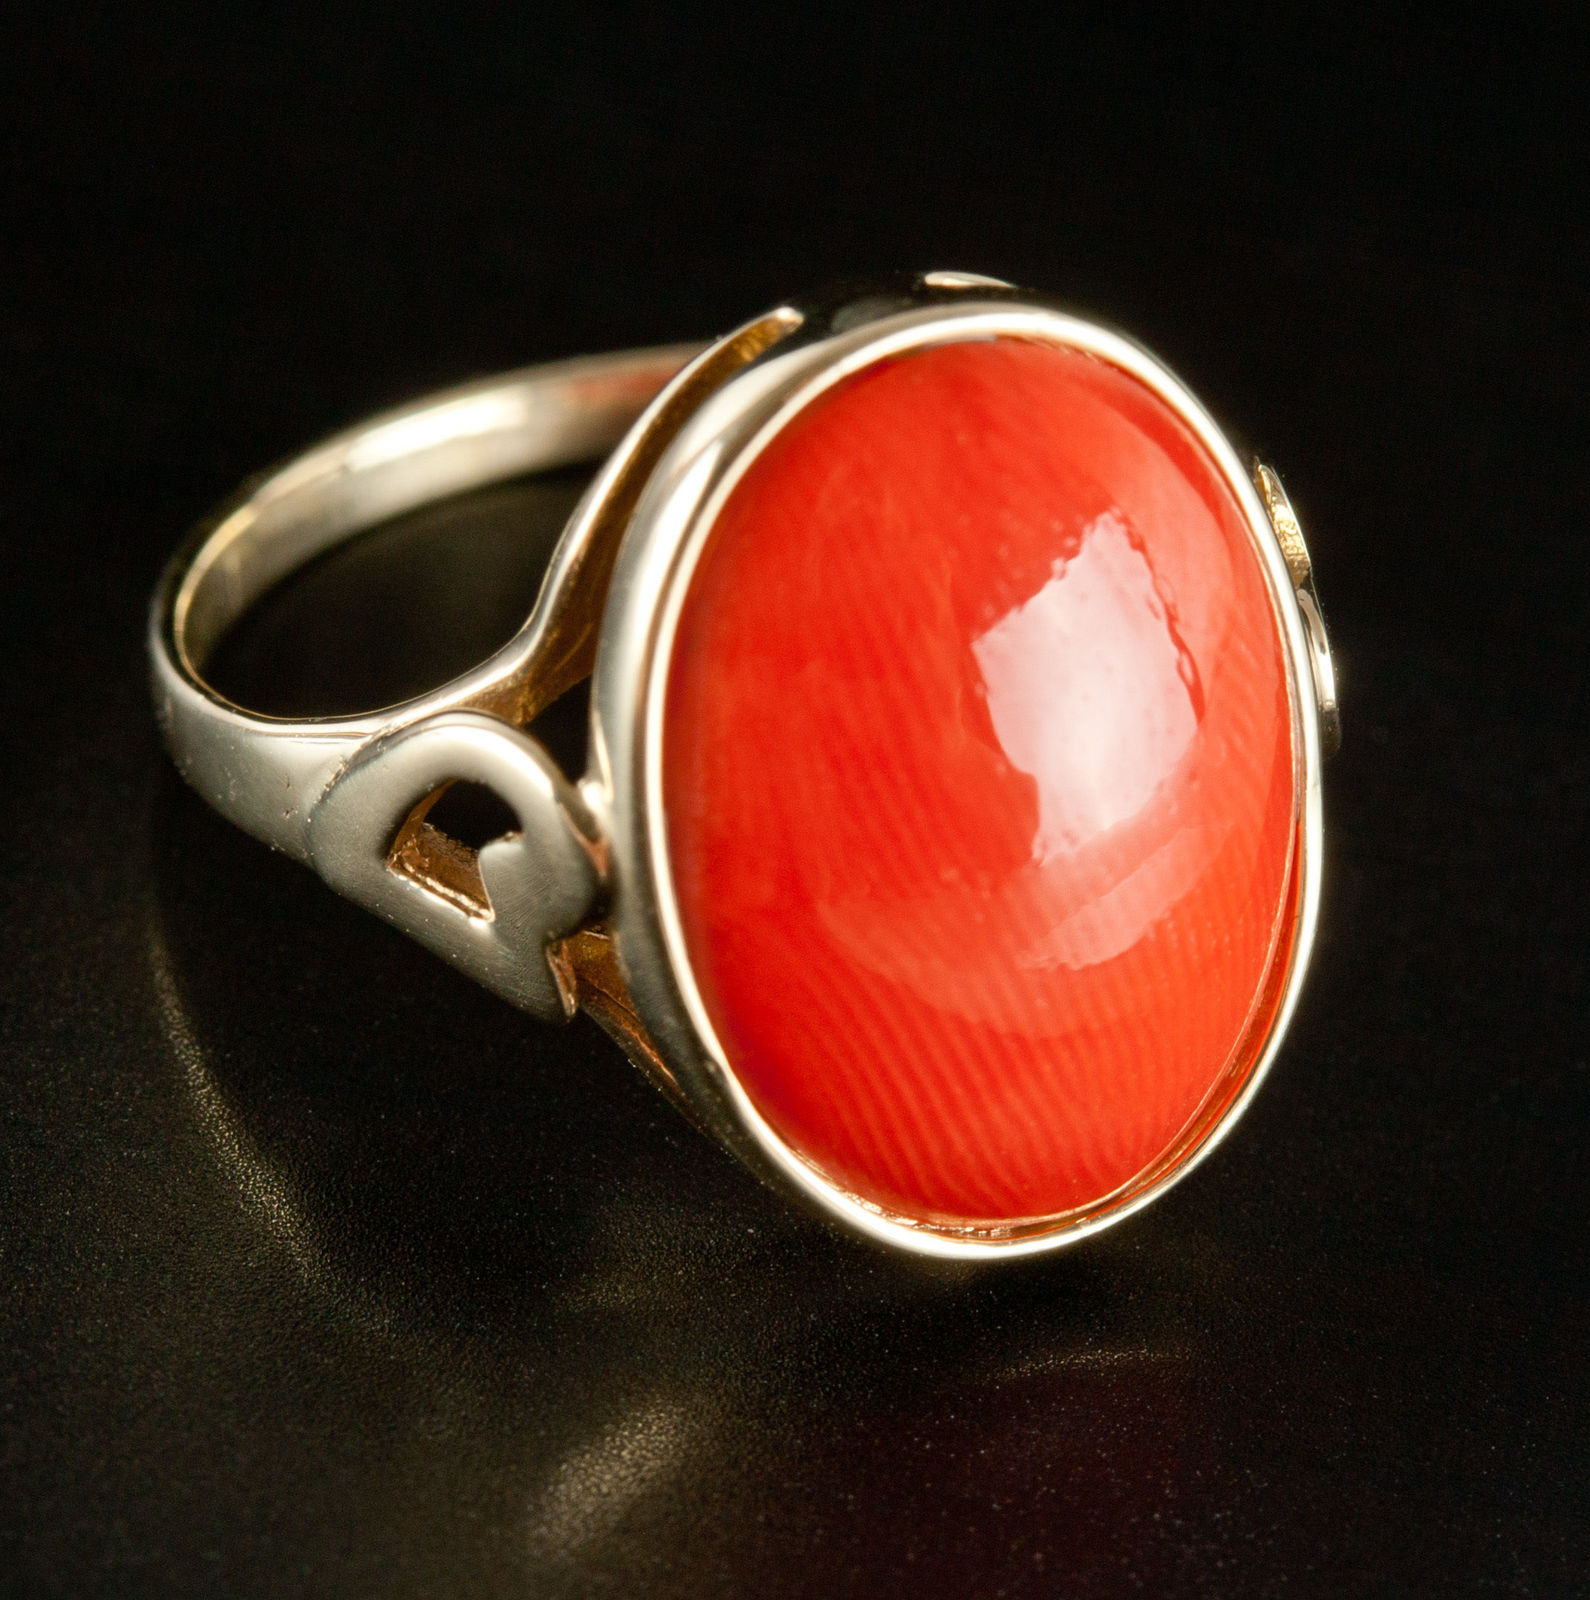 Primary image for Vintage 1960's 8k Yellow Gold Oval Cabochon Coral Solitaire Ring 5.48ctw